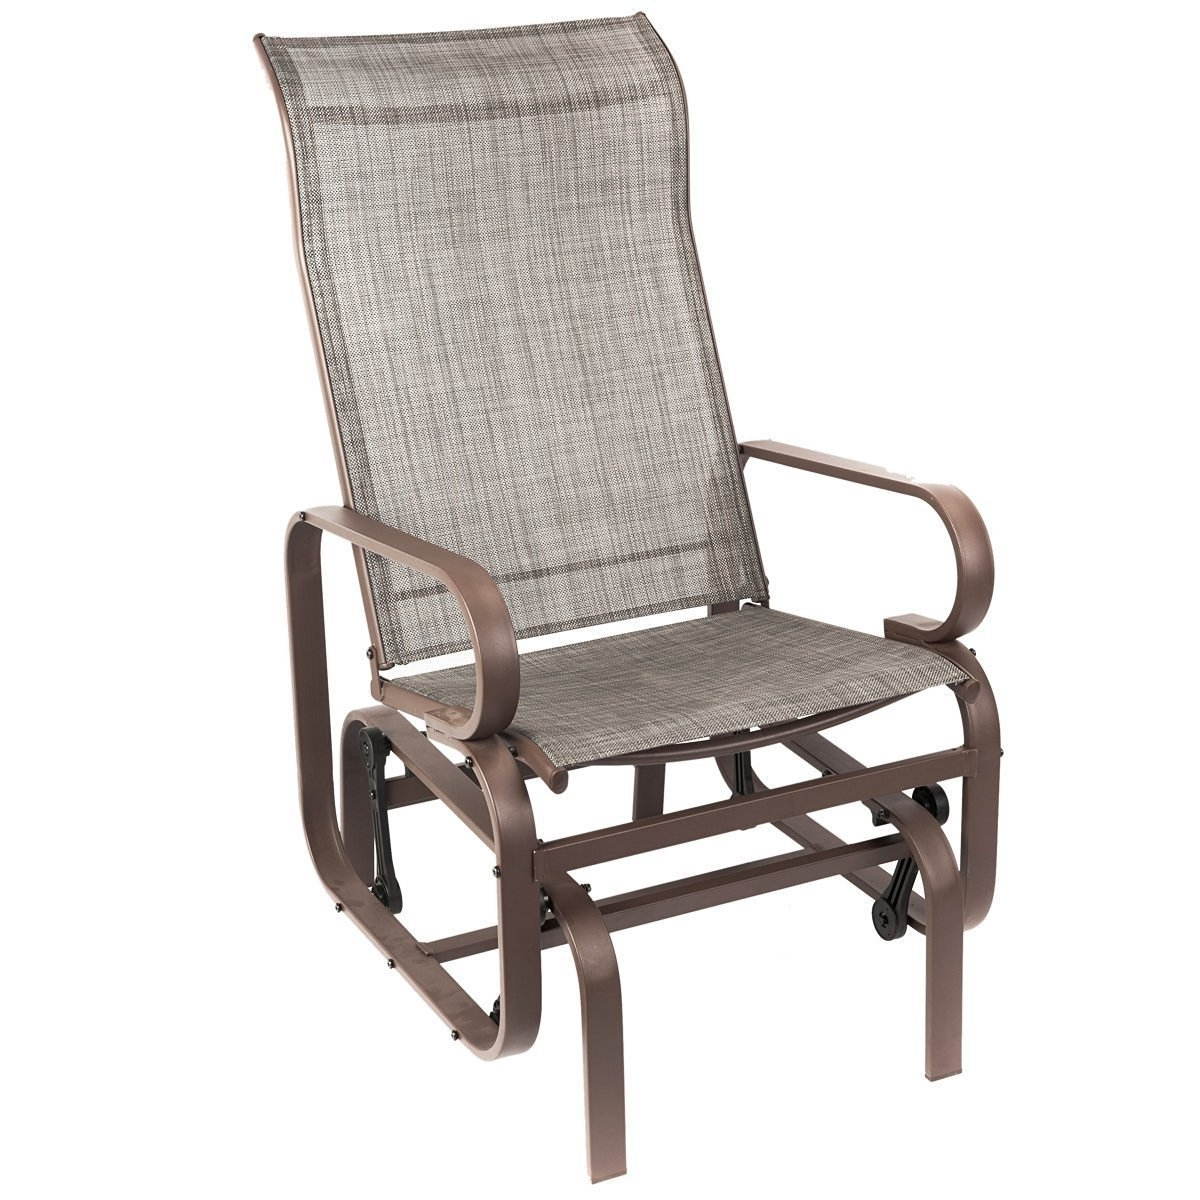 Most Popular Rocking Chairs For Patio Within Naturefun Outdoor Patio Rocker Chair, Balcony Glider Rocking Lounge (View 3 of 15)